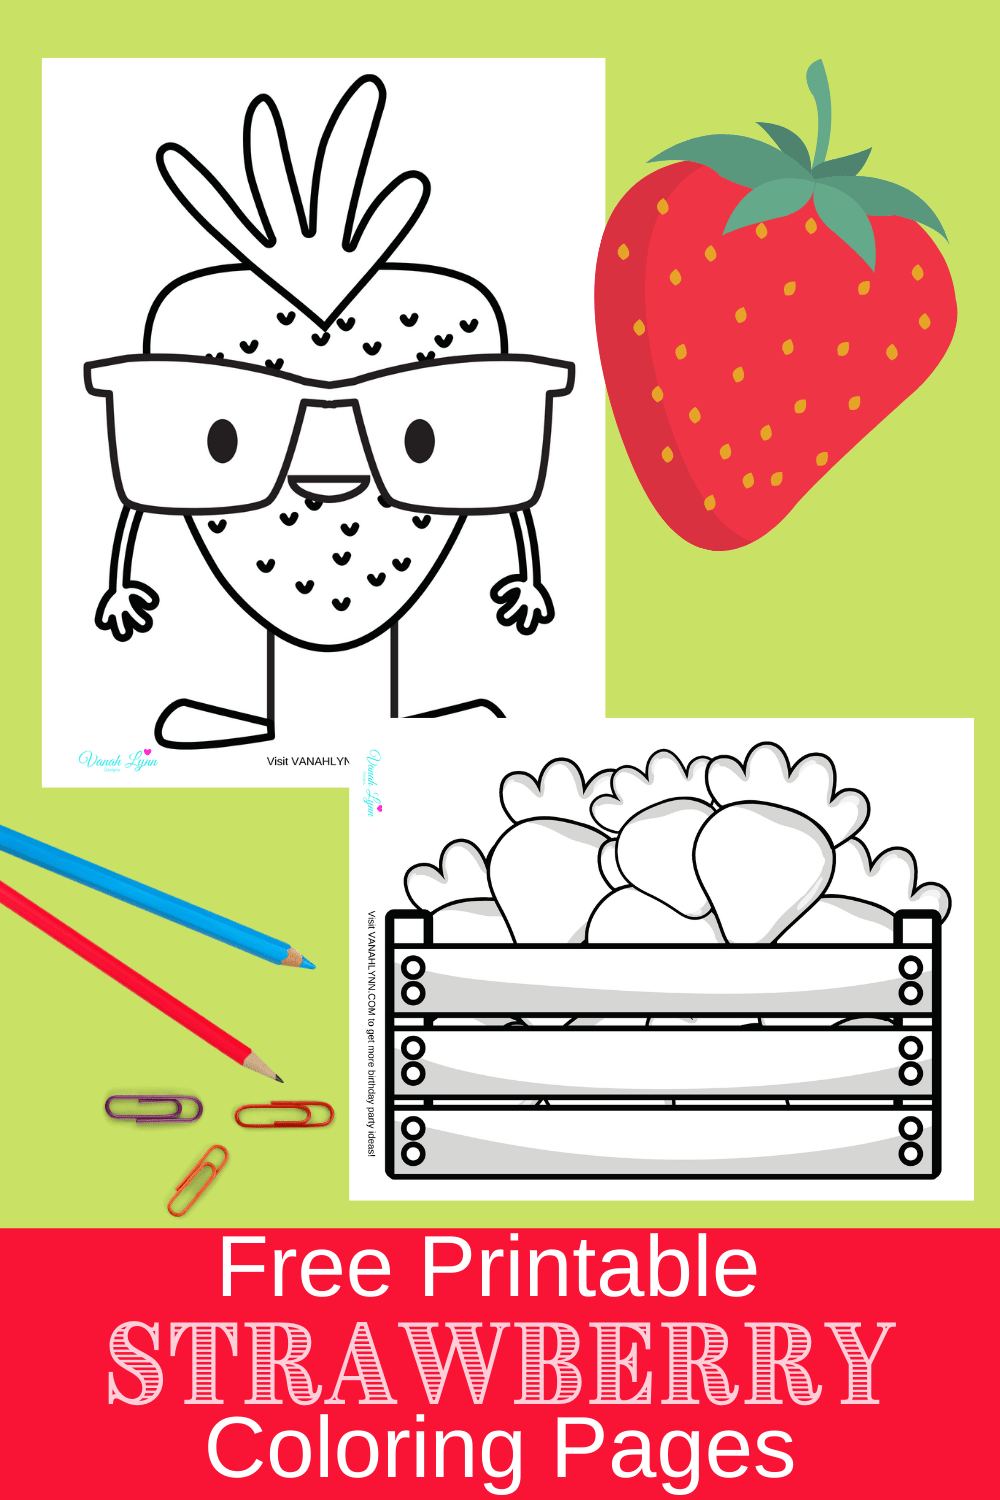 coloring pages for strawberry